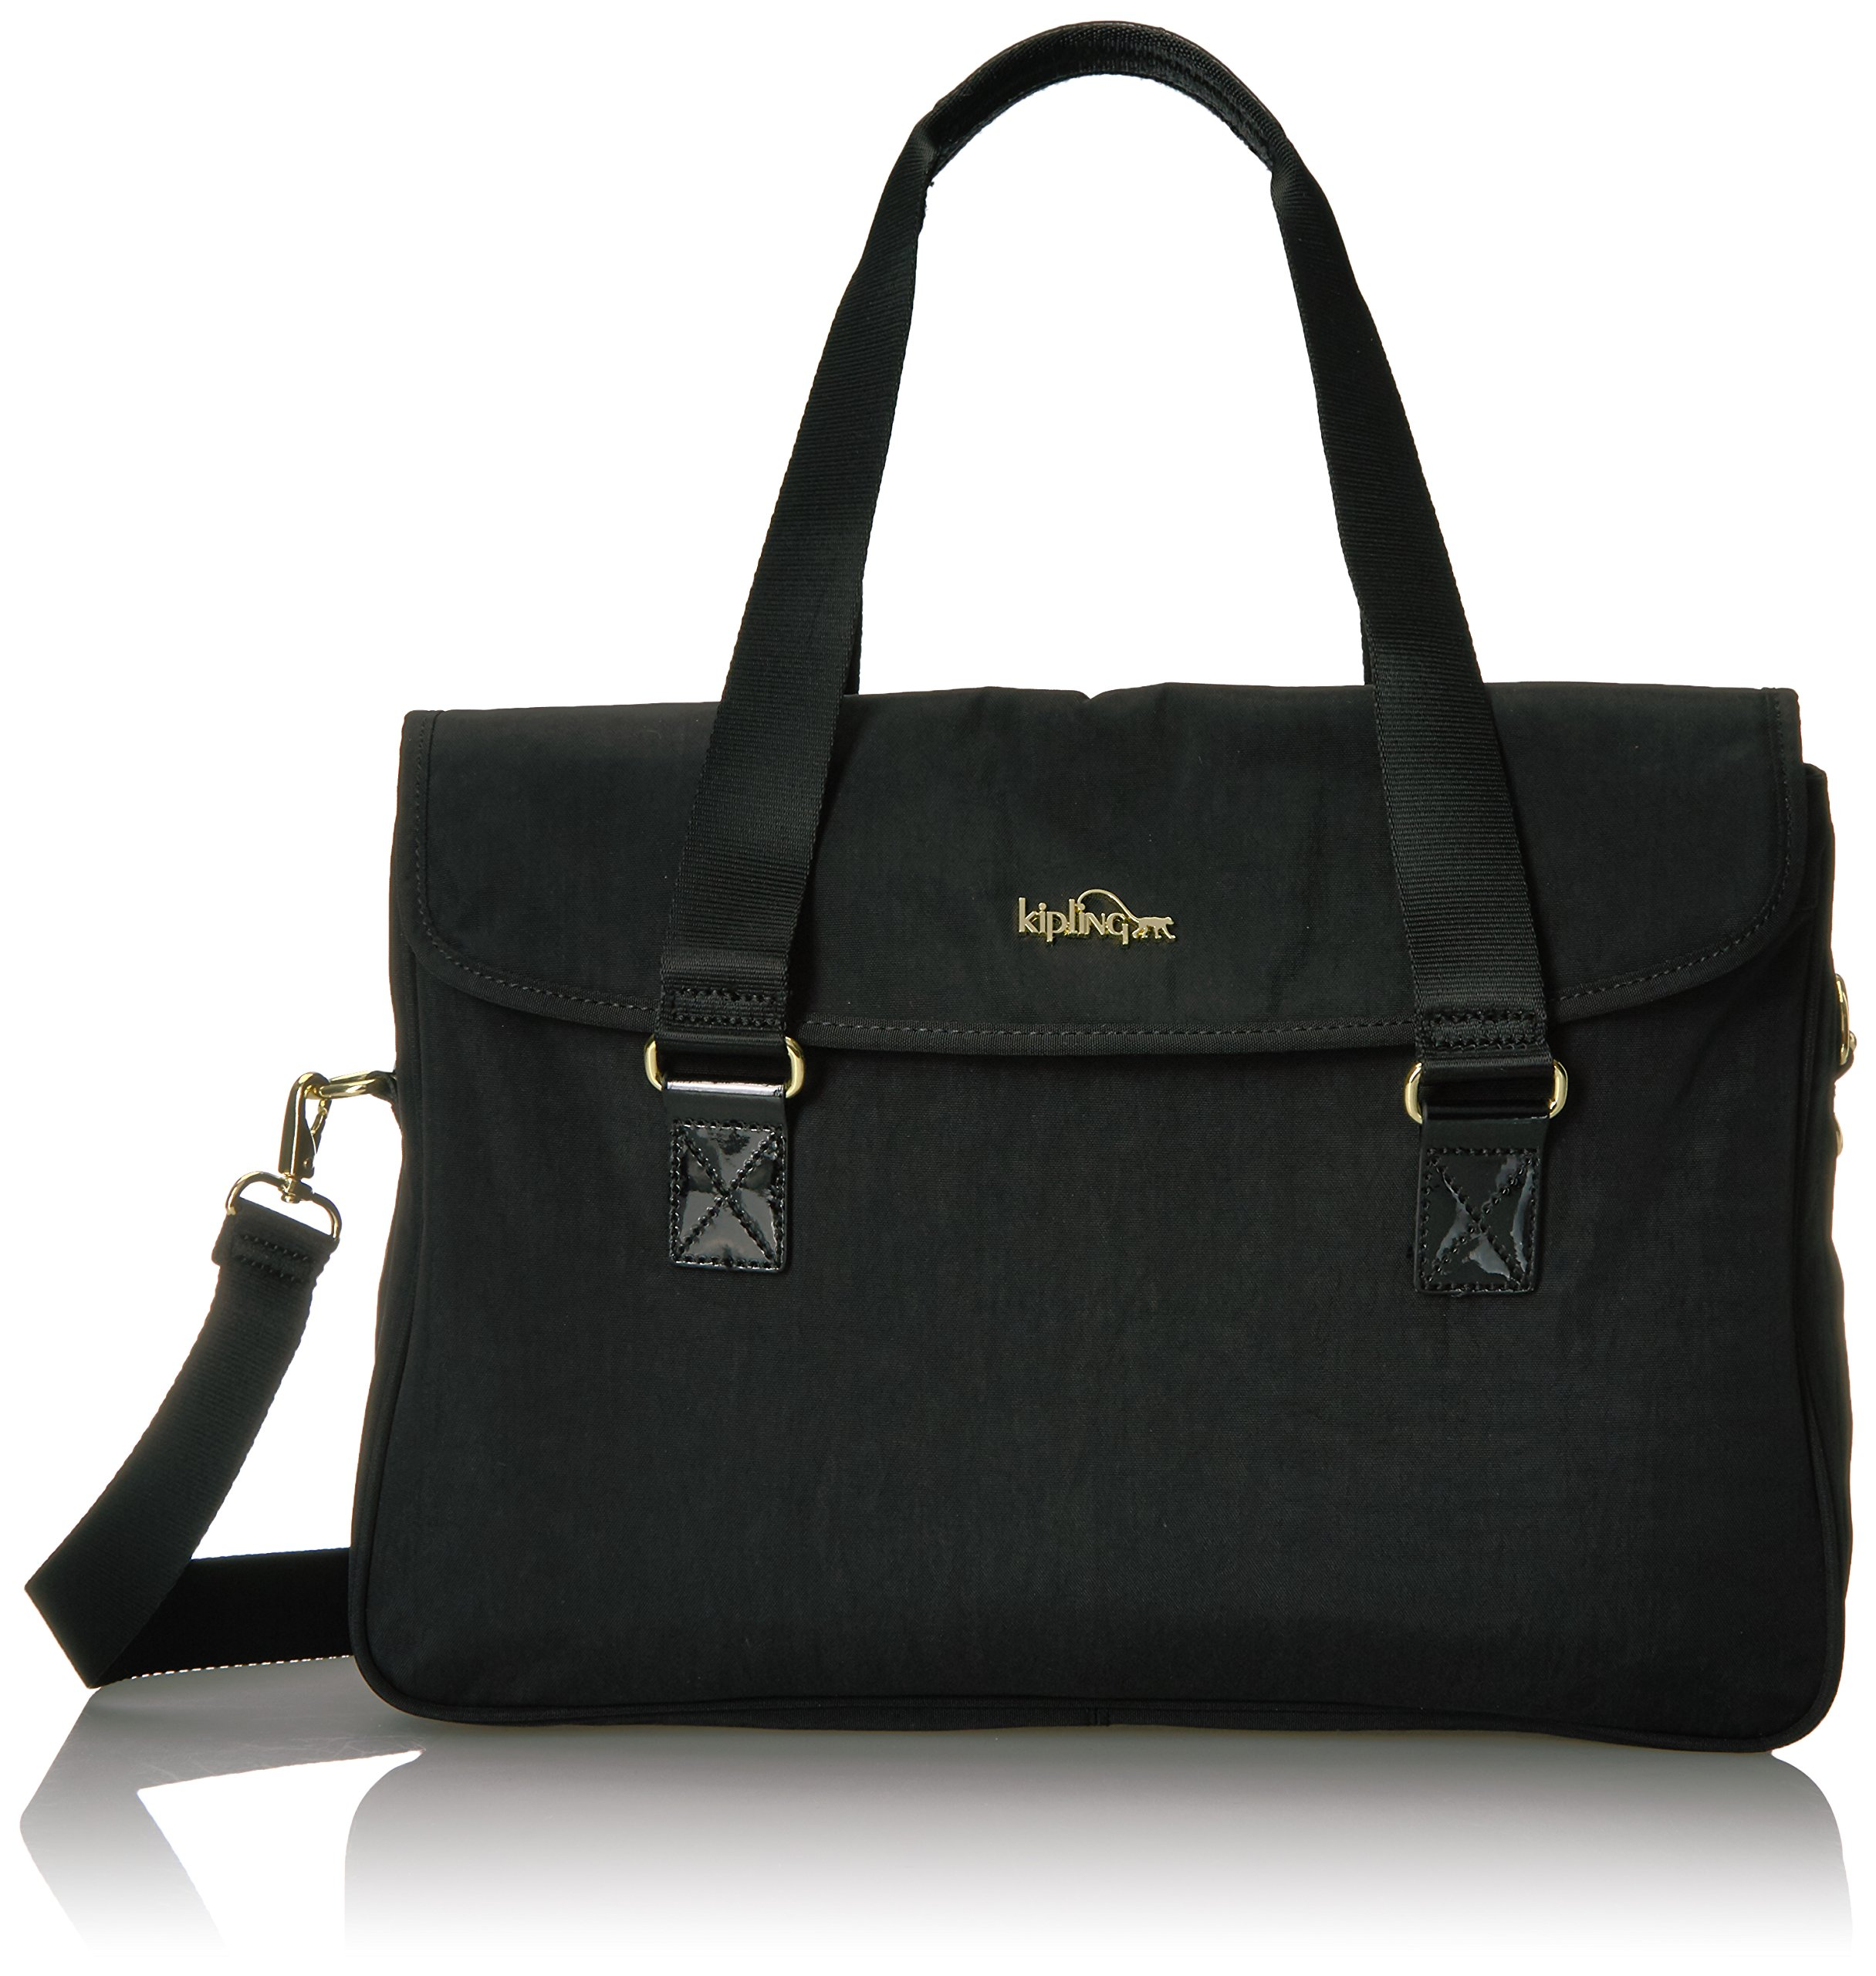 SUPER WORK SATCHEL Shoulder Bag, BLACK PATENT COMBO, One Size